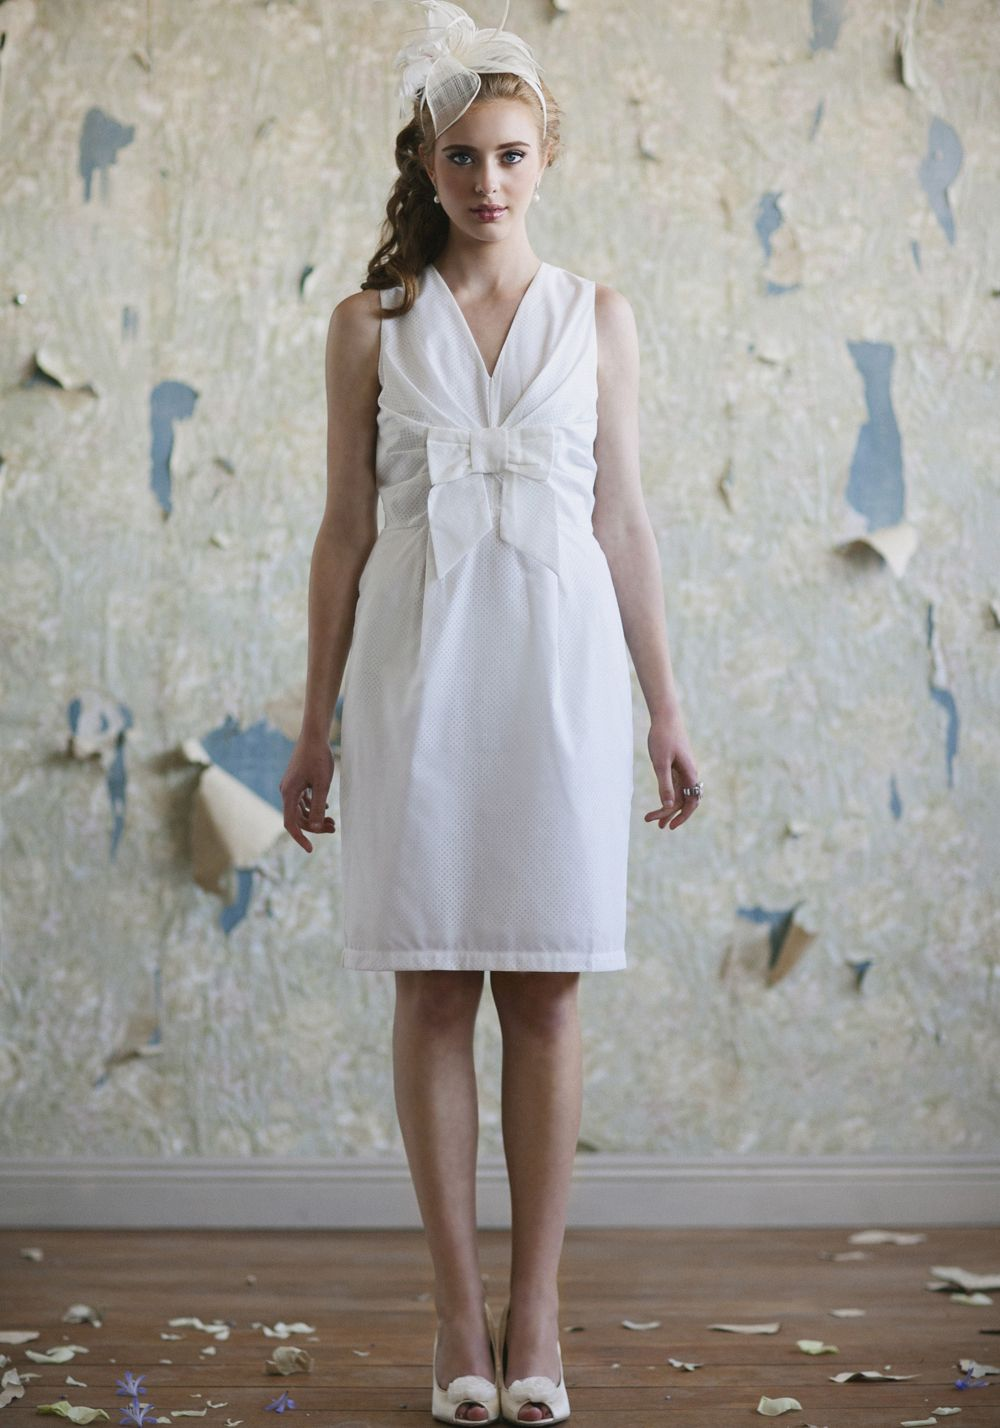 Jcrew wedding dress  Jacqueline Marie This is supposed to be a wedding dress but itus